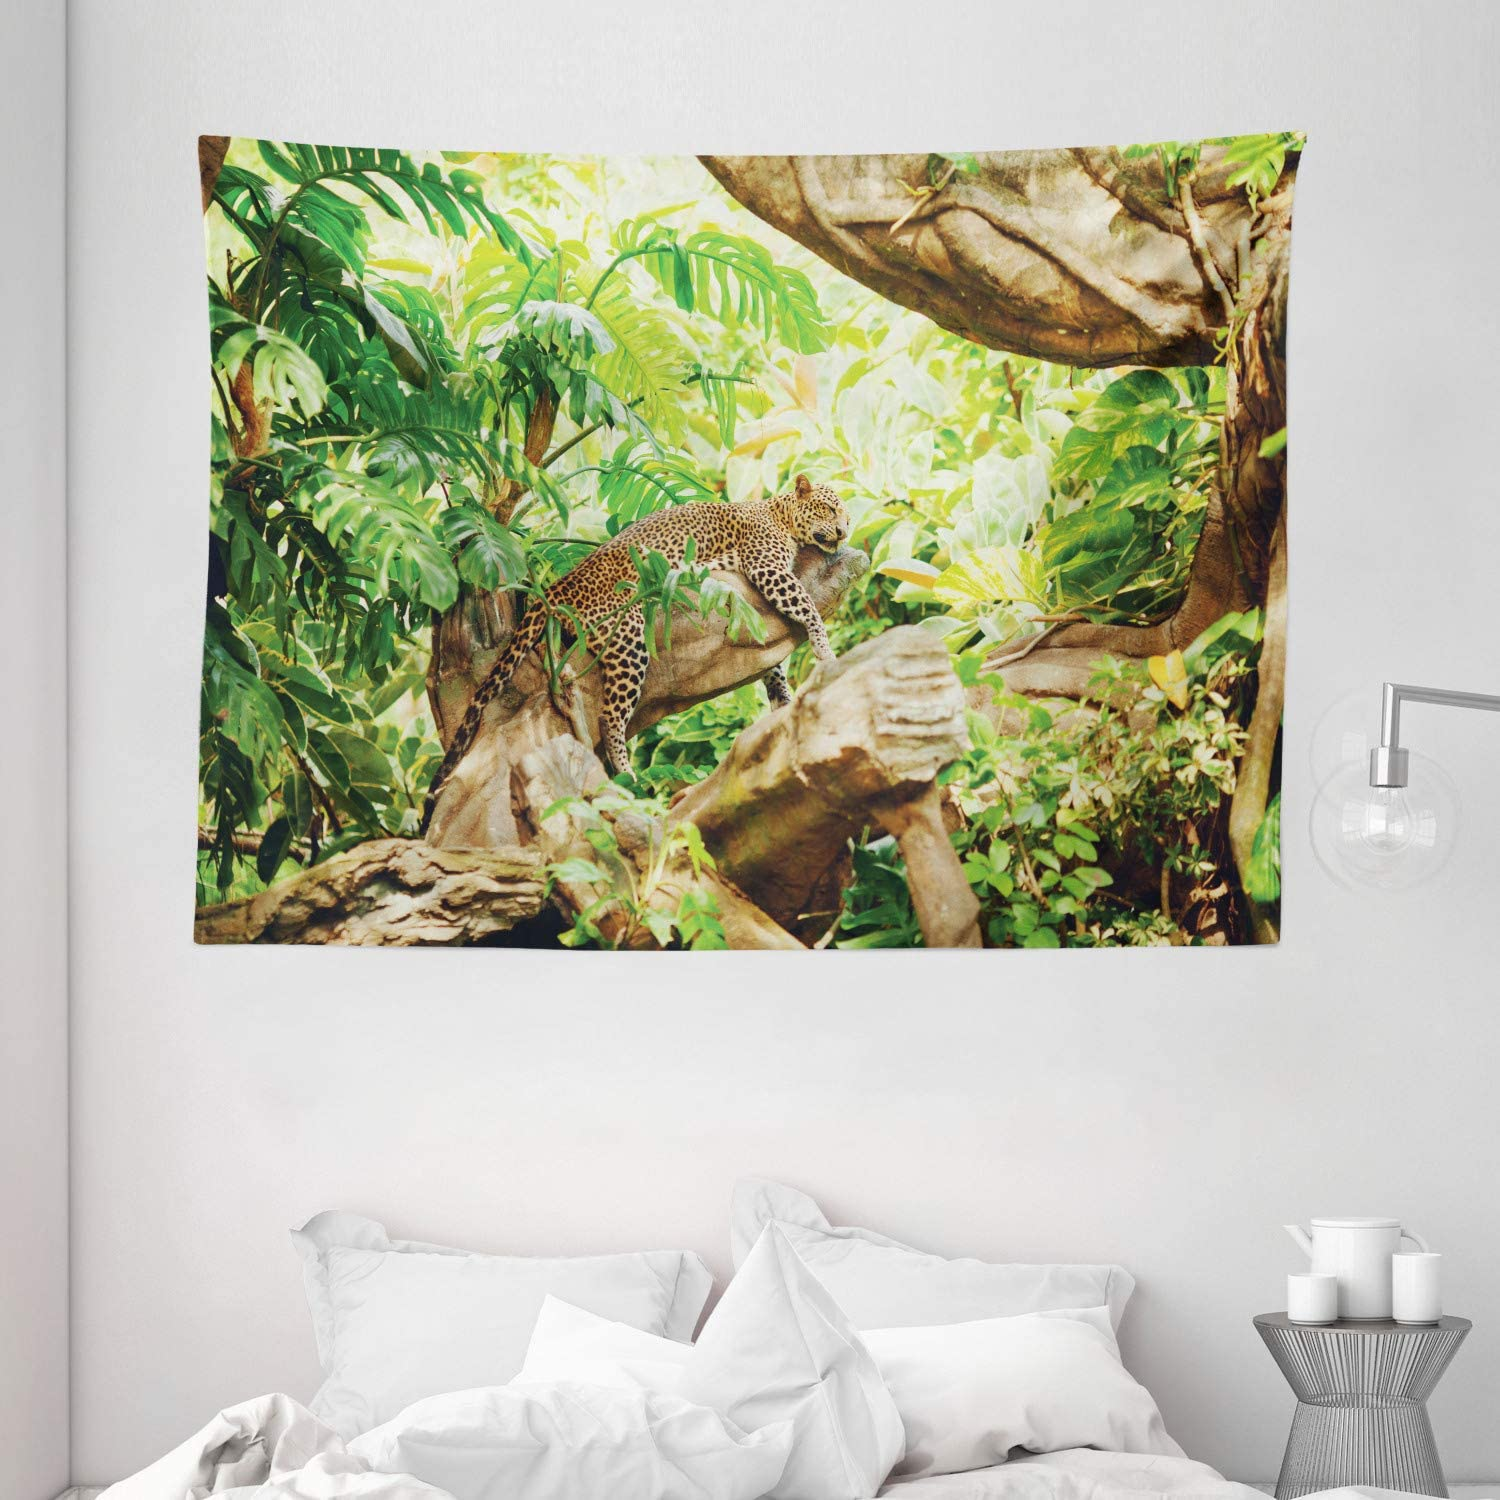 Ambesonne Safari Decor Tapestry, Leopard on The Branch in Savanna Exotic Macro Tropical Leaf Jungle Wild Nature Art Photo, Wall Hanging for Bedroom Living Room Dorm, 80 X 60 Inches, Brown Green